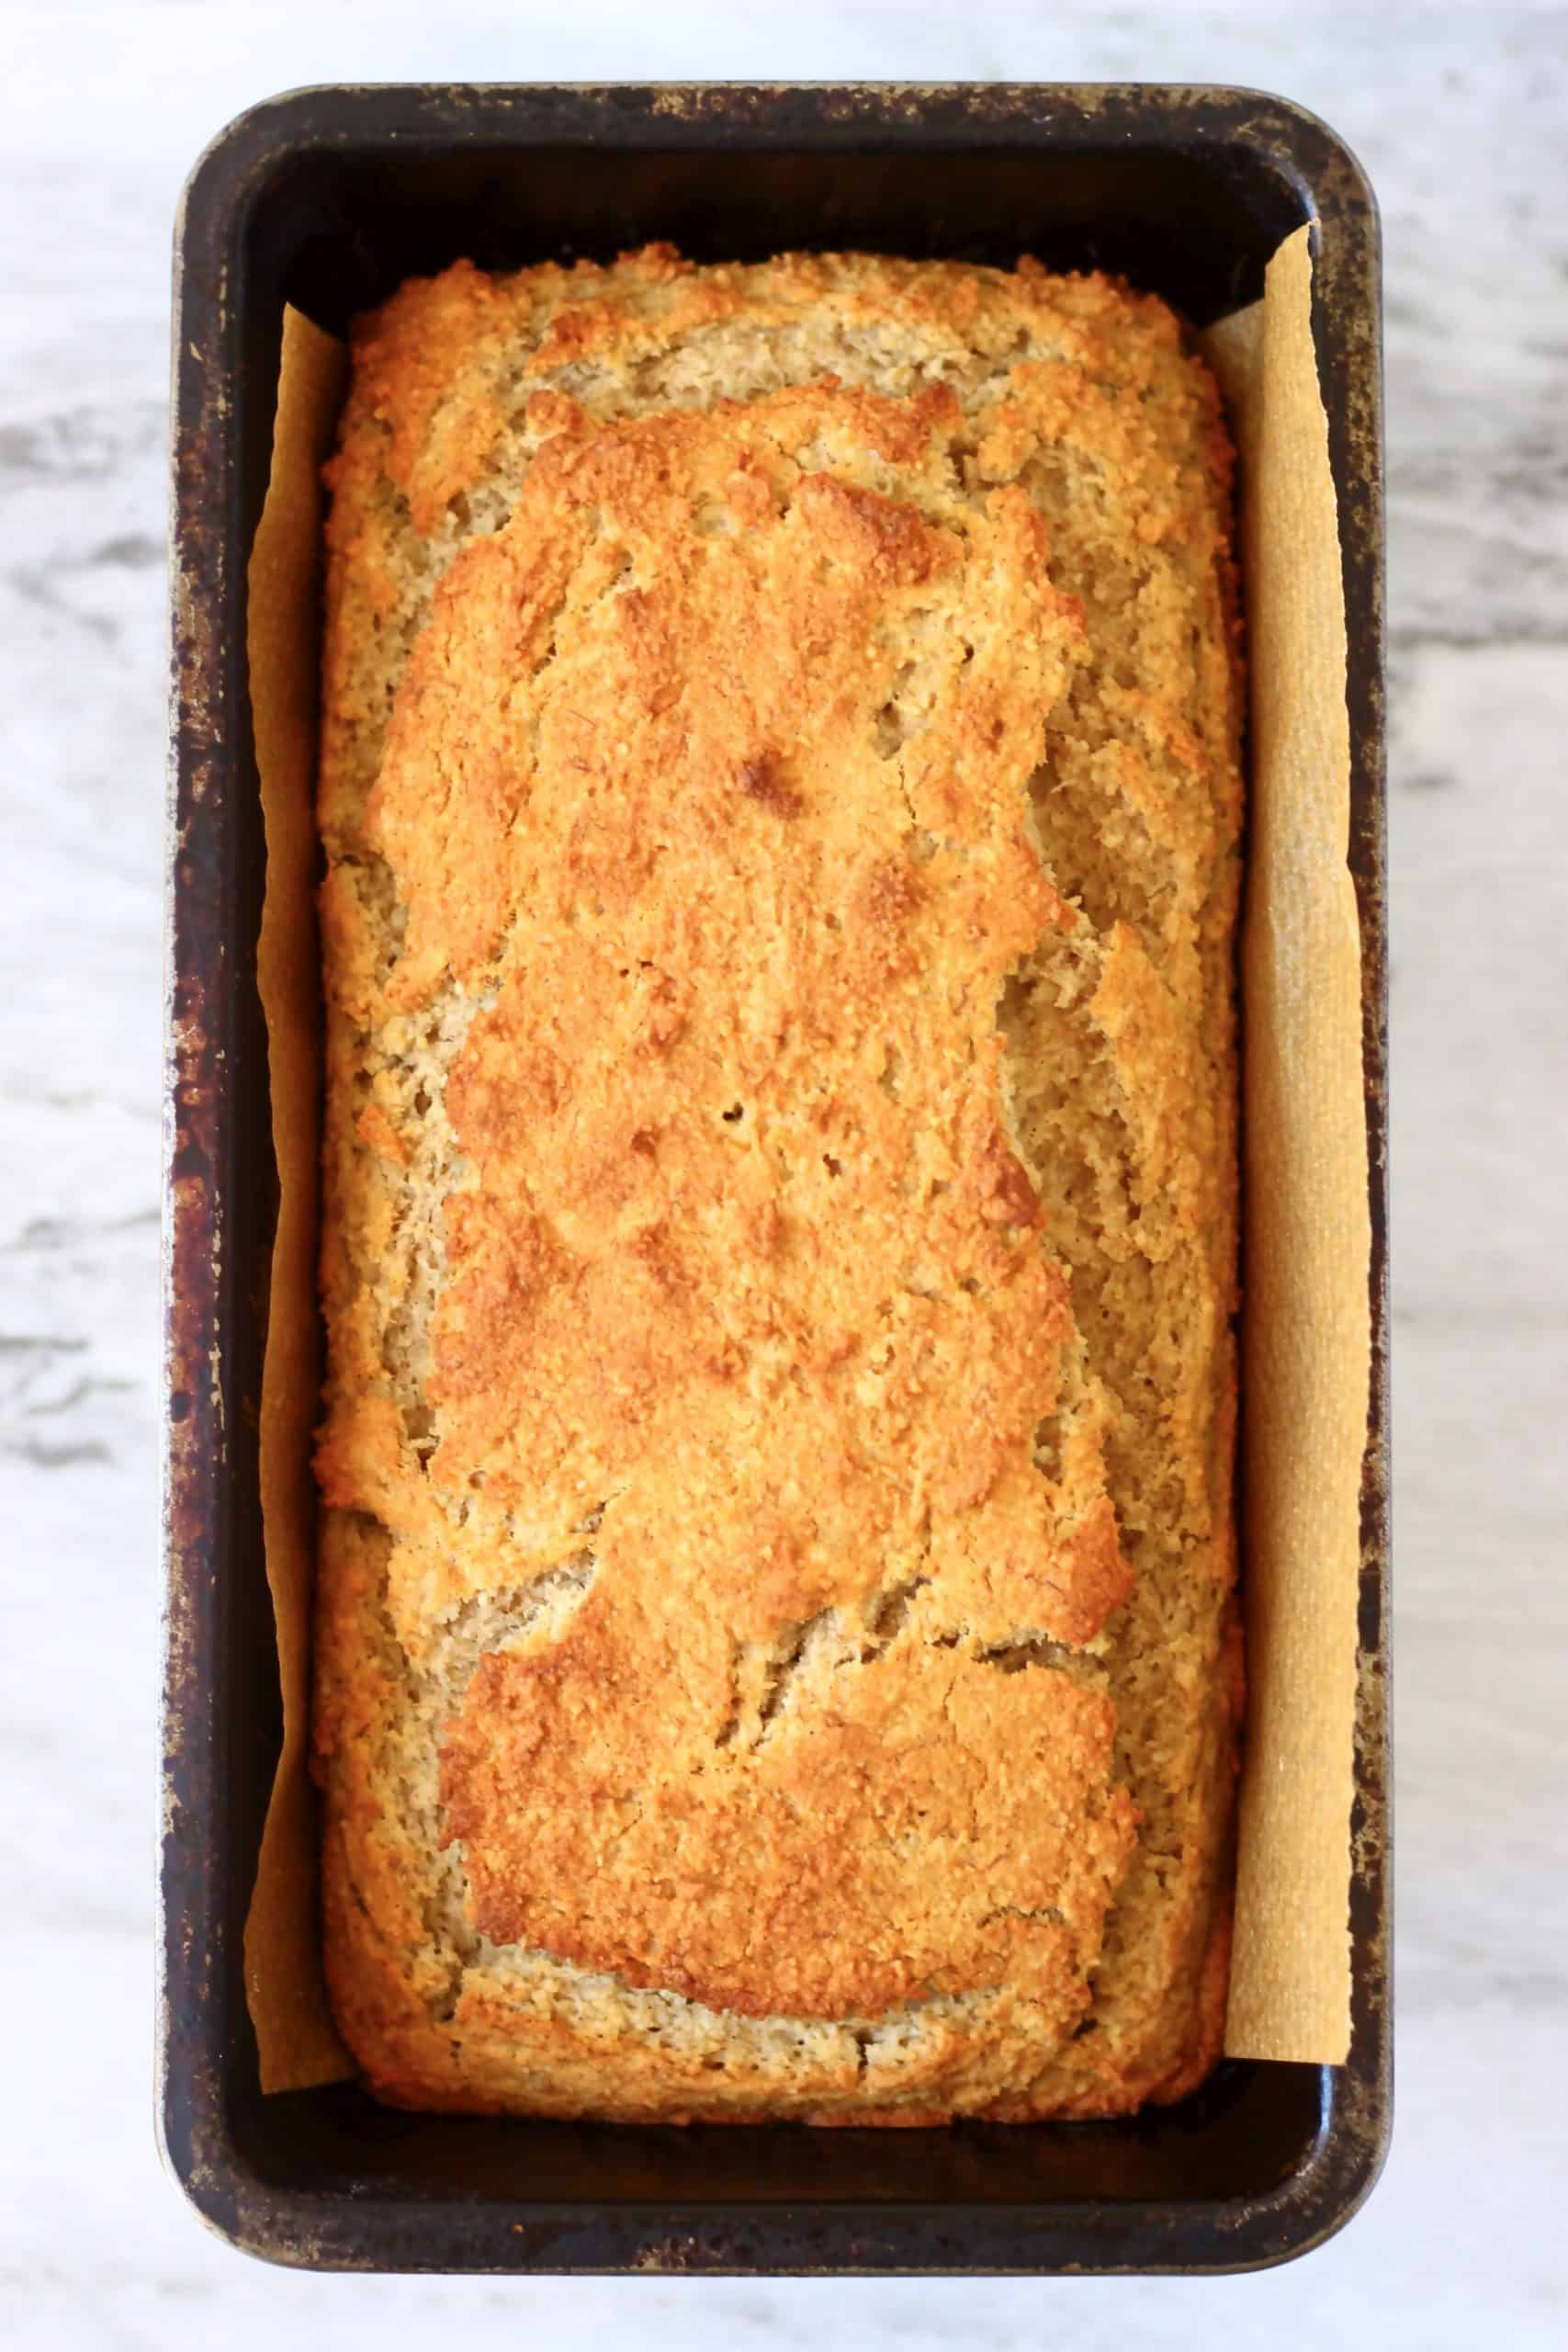 A loaf of gluten-free vegan peanut butter banana bread in a loaf tin